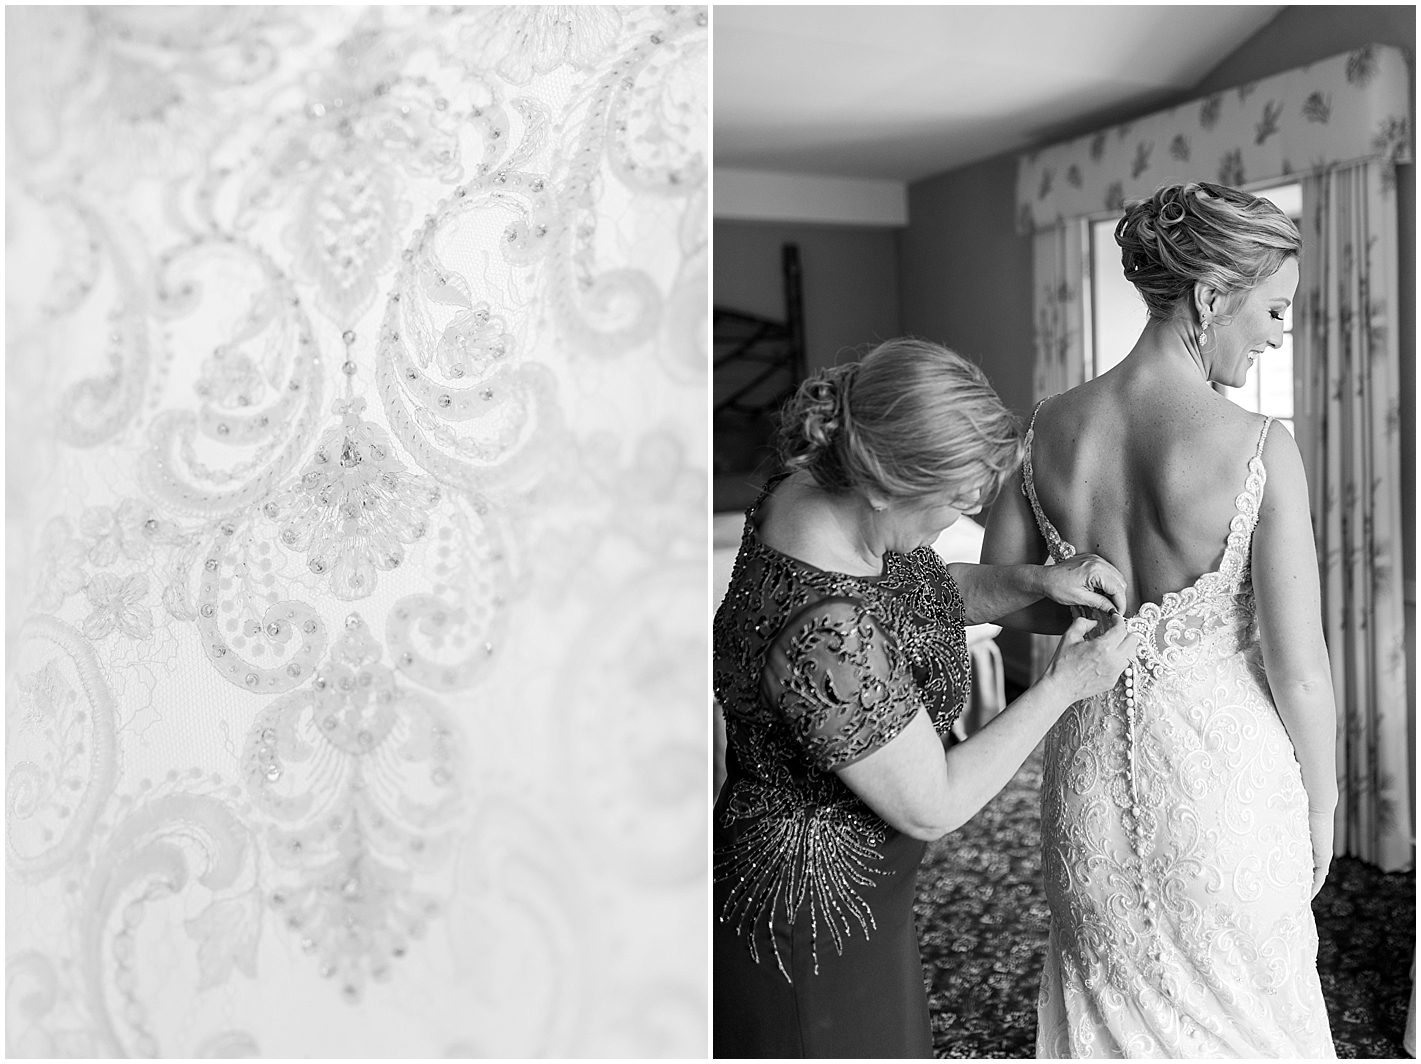 Mom and Daughter Getting Wedding Gown On Photos by Alyssa Parker Photography